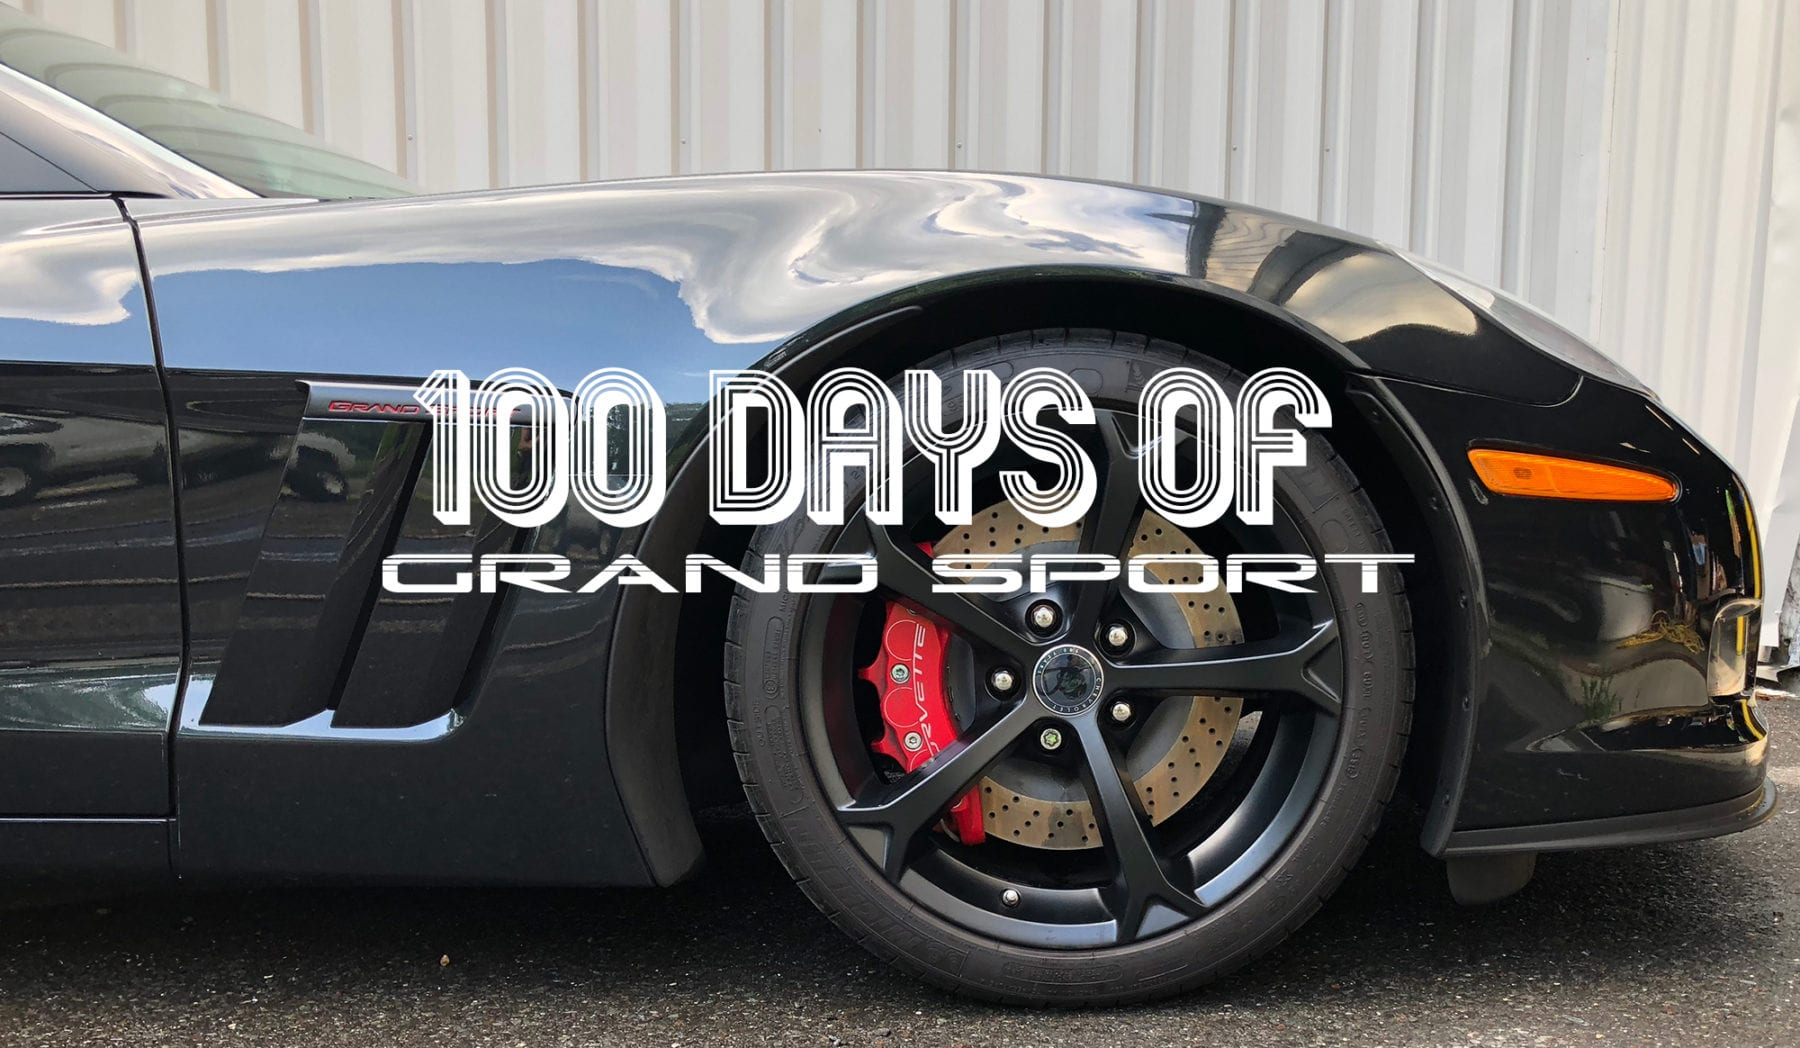 100-Days-of-Grand-Sport-pt3-lead